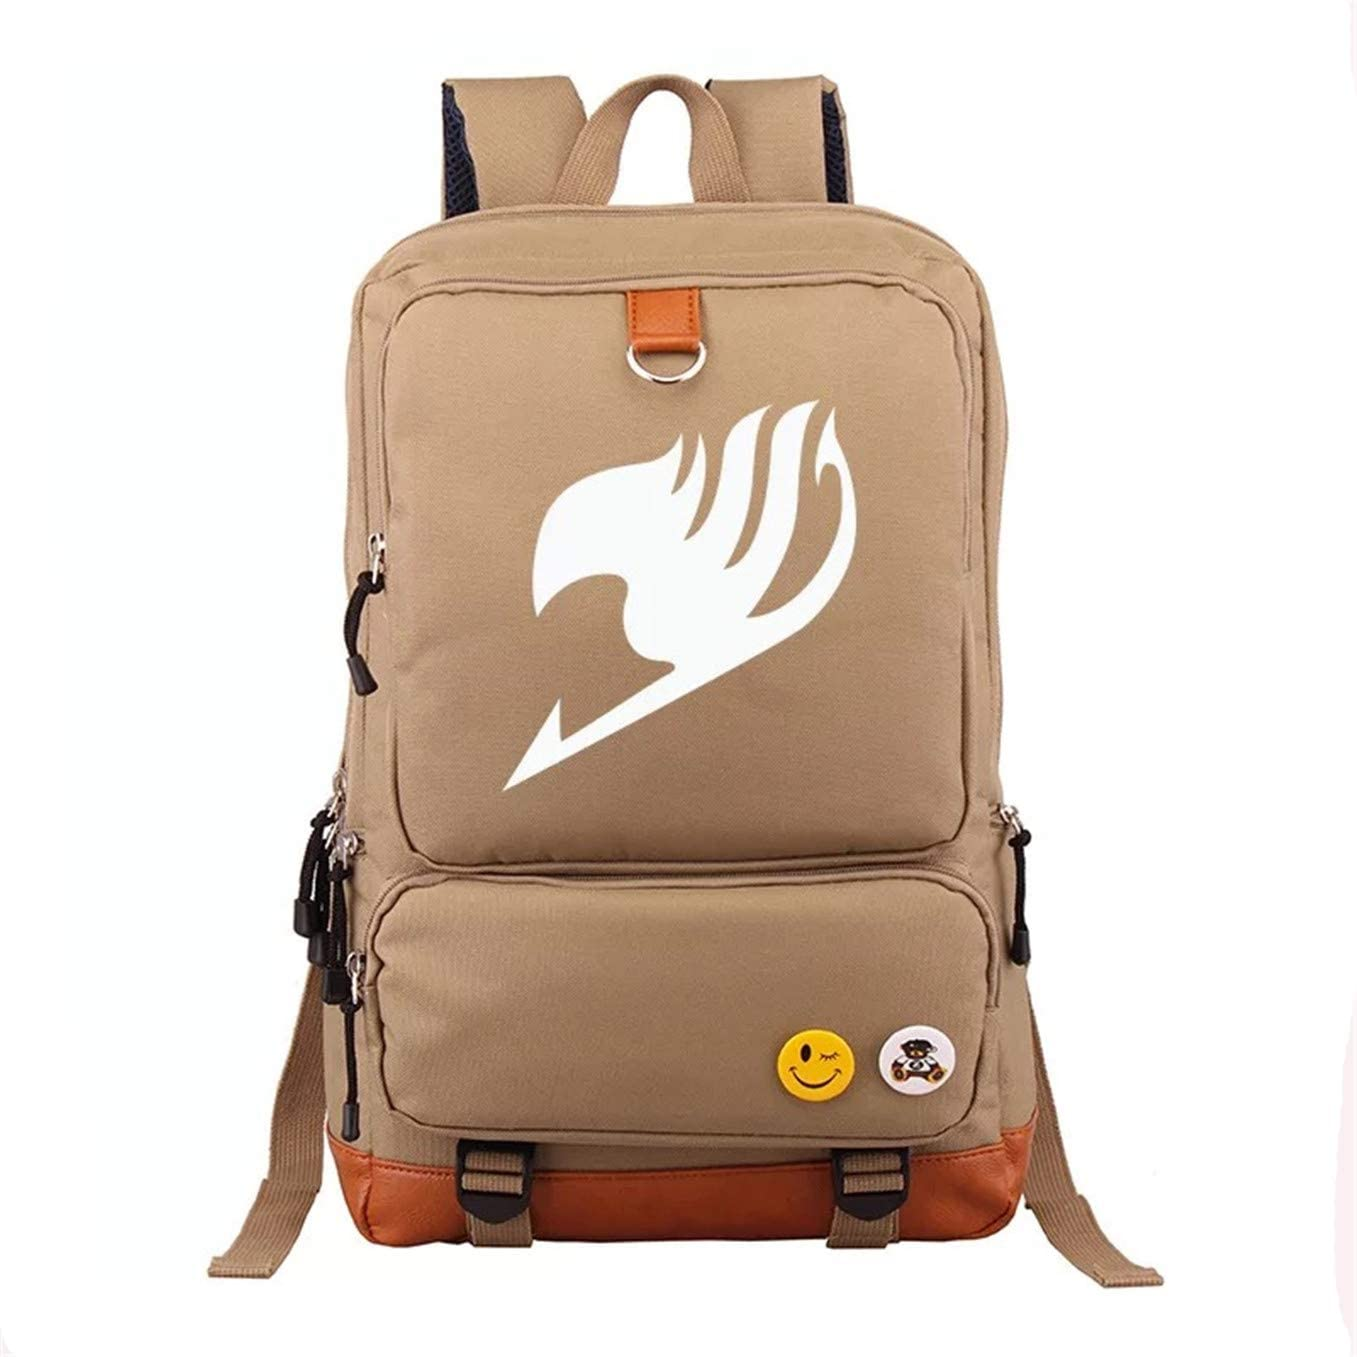 XMTIHE Kids Fairy Tail Canvas School Backpack-Back to School Bookbag Anime Laptop Backpack with Side Pockets